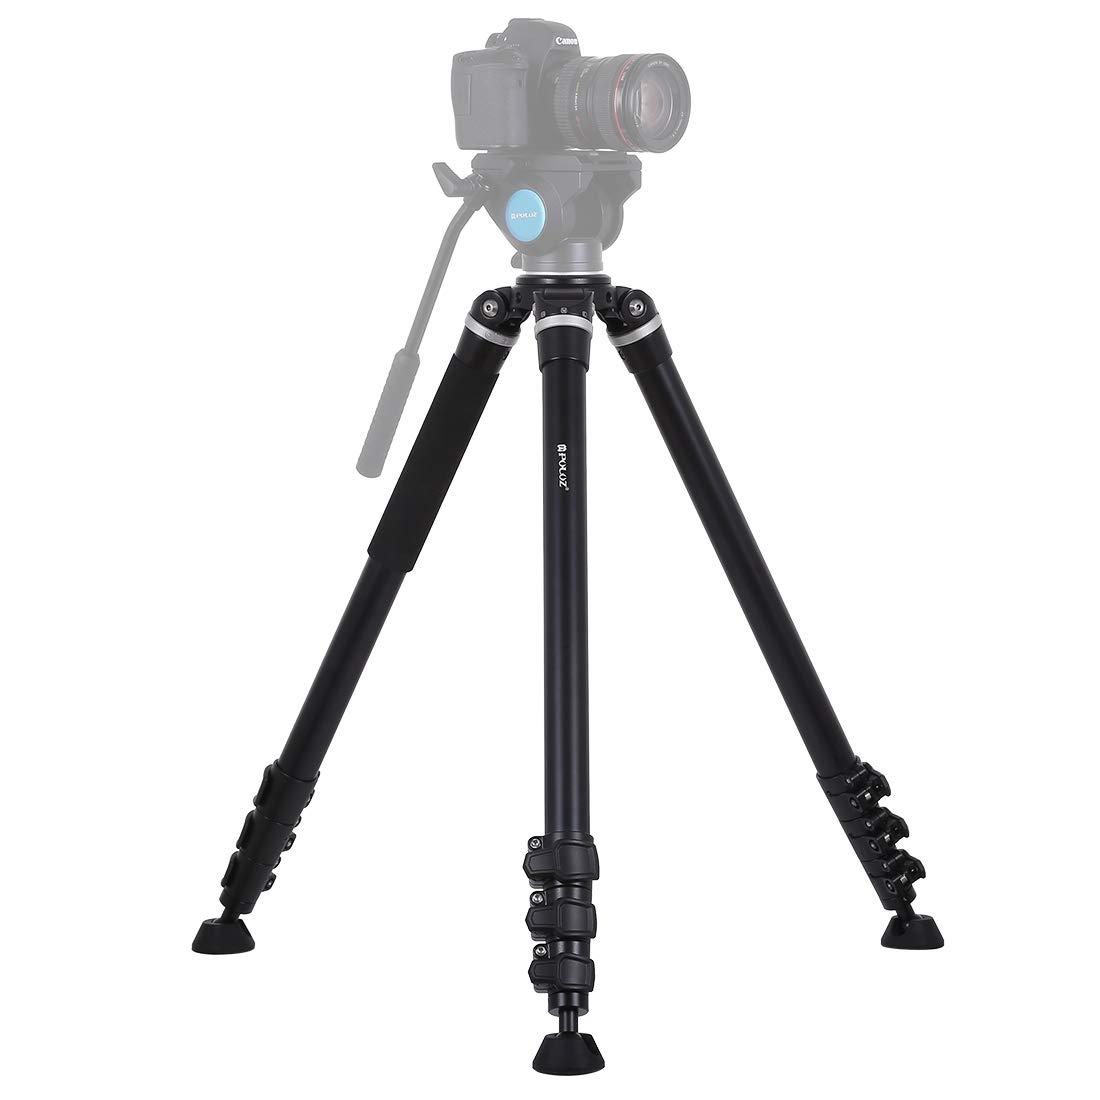 Camera 4-Section Folding Legs Metal Tripod Mount for DSLR/SLR Camera, Adjustable Height: 97-180cm Foldable and Portable by JUNXI